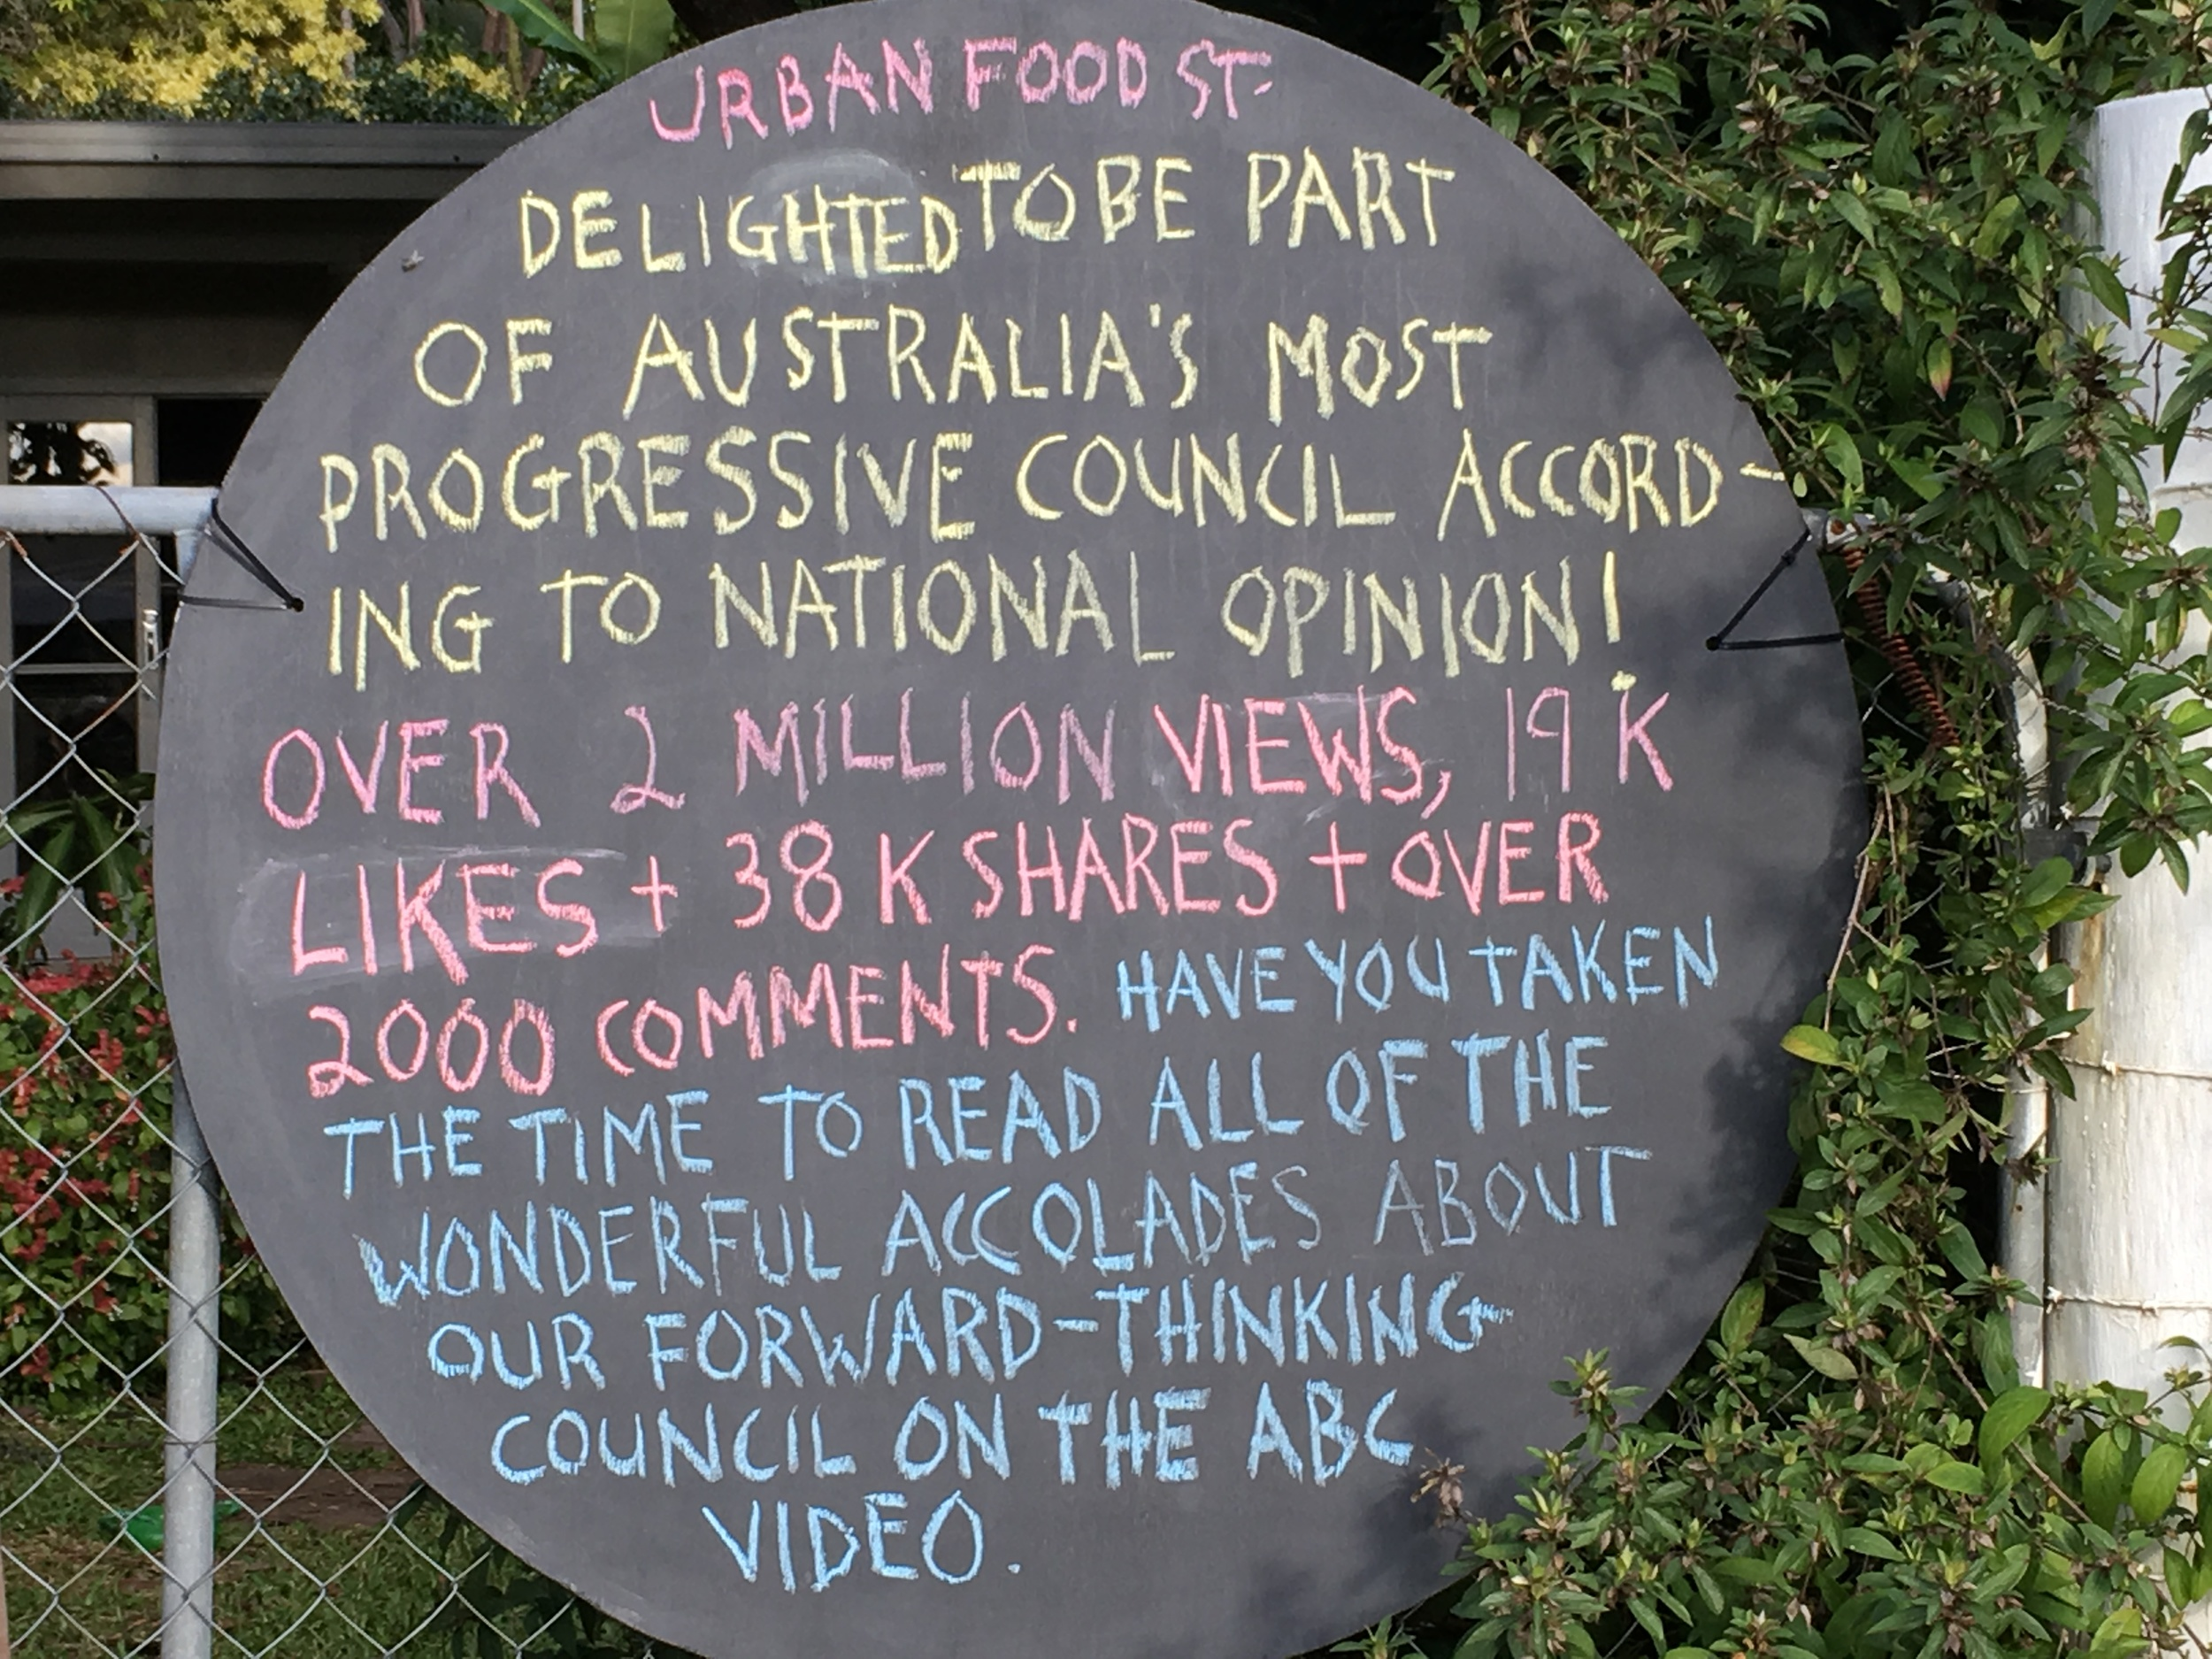 The URBAN FOOD STREET video produced by the ABC received over 2 million views. There were council accolades everywhere.